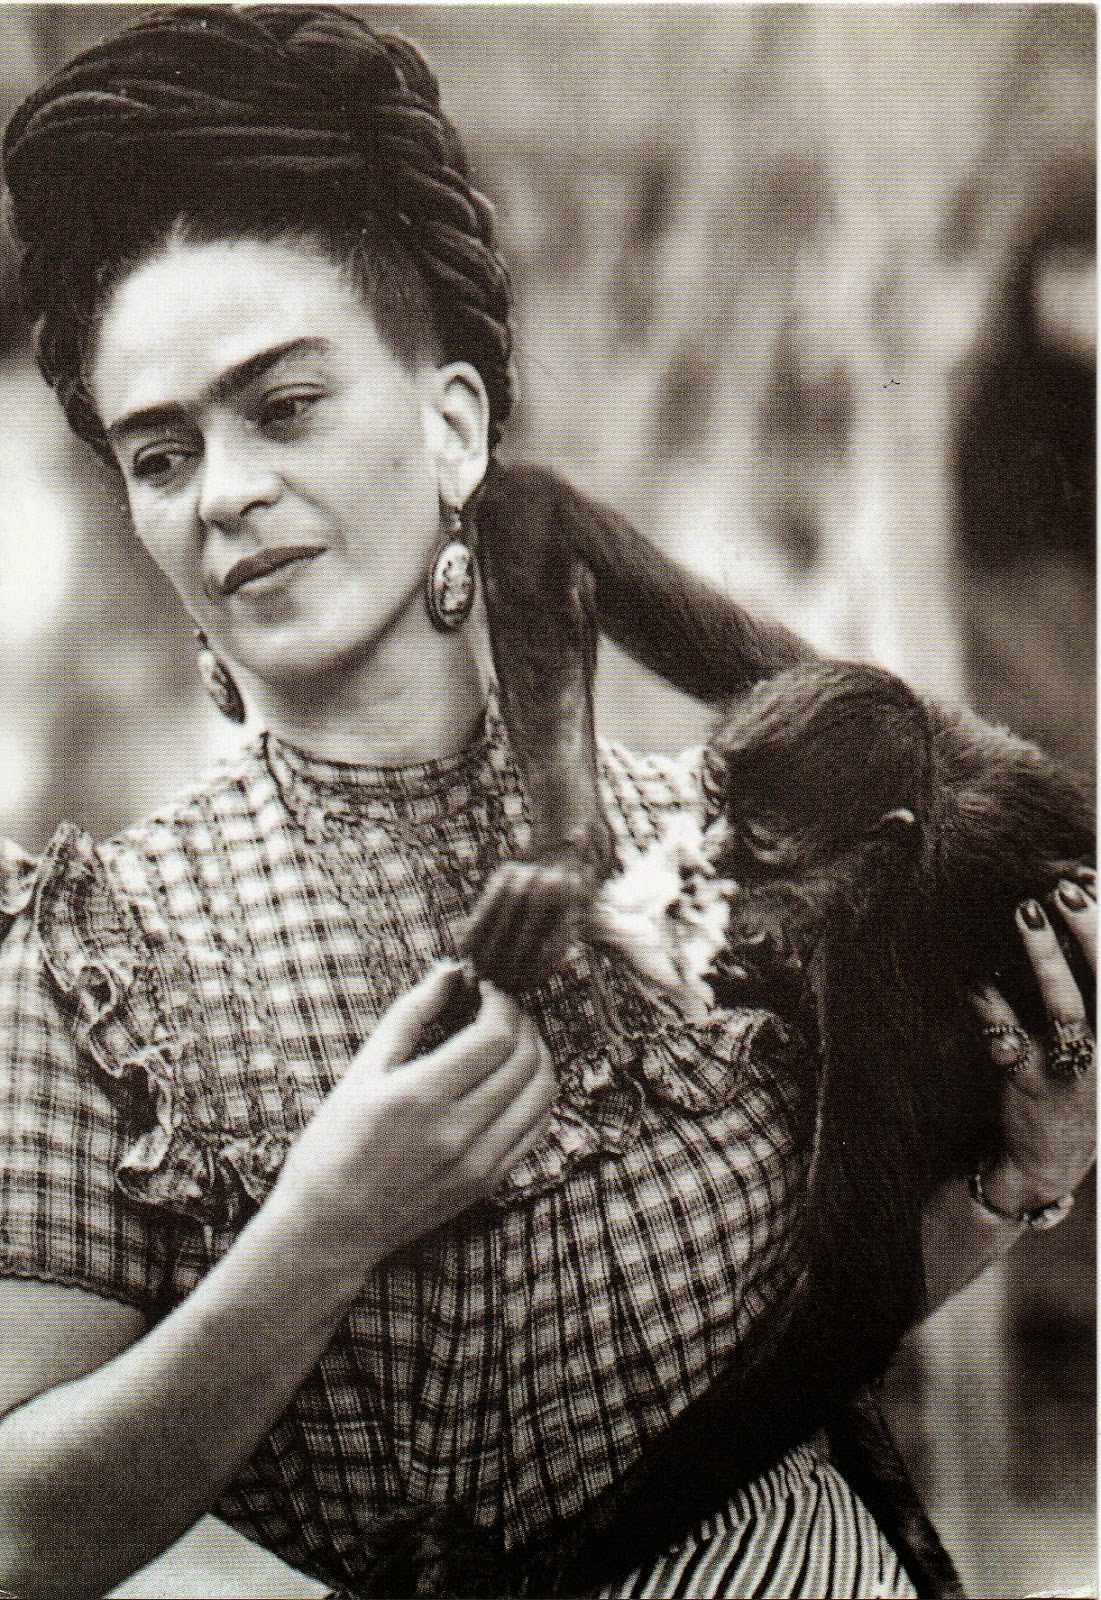 frida her life Frida kahlo lived an intensely emotional life full of precocious learning and  controversial temptations this filled her history with love, struggle.